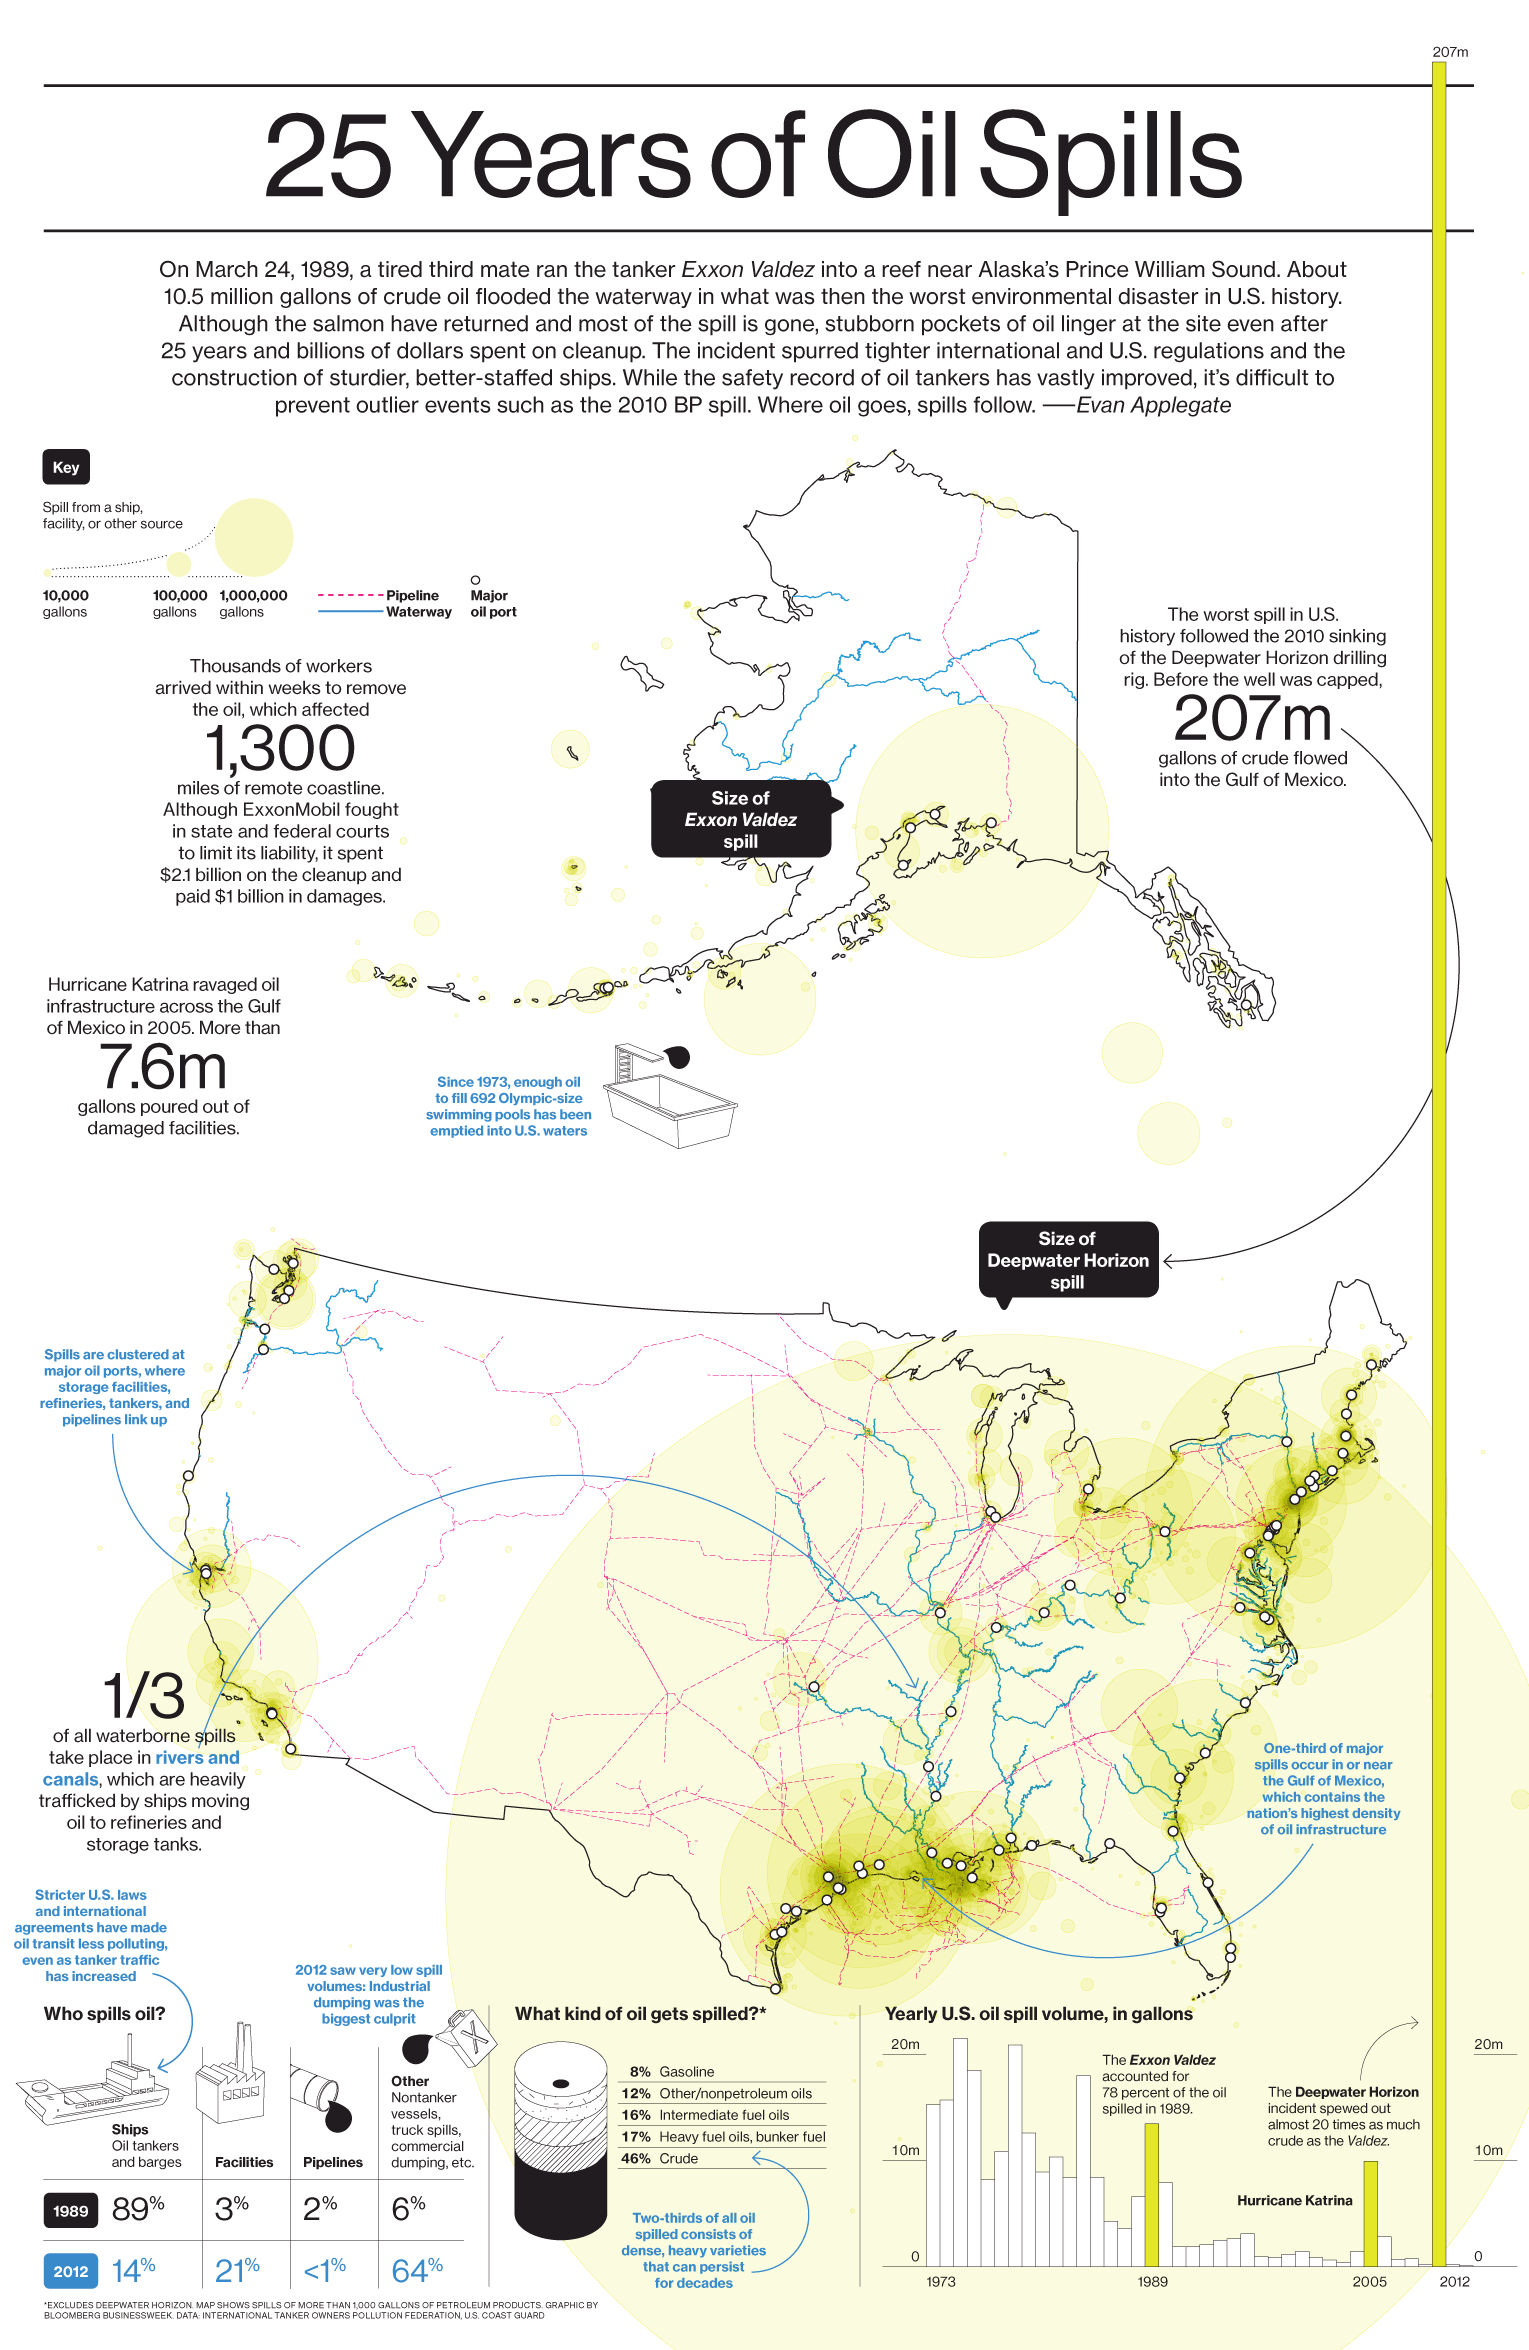 Businessweek map and data visualization - 25 years of oil spills